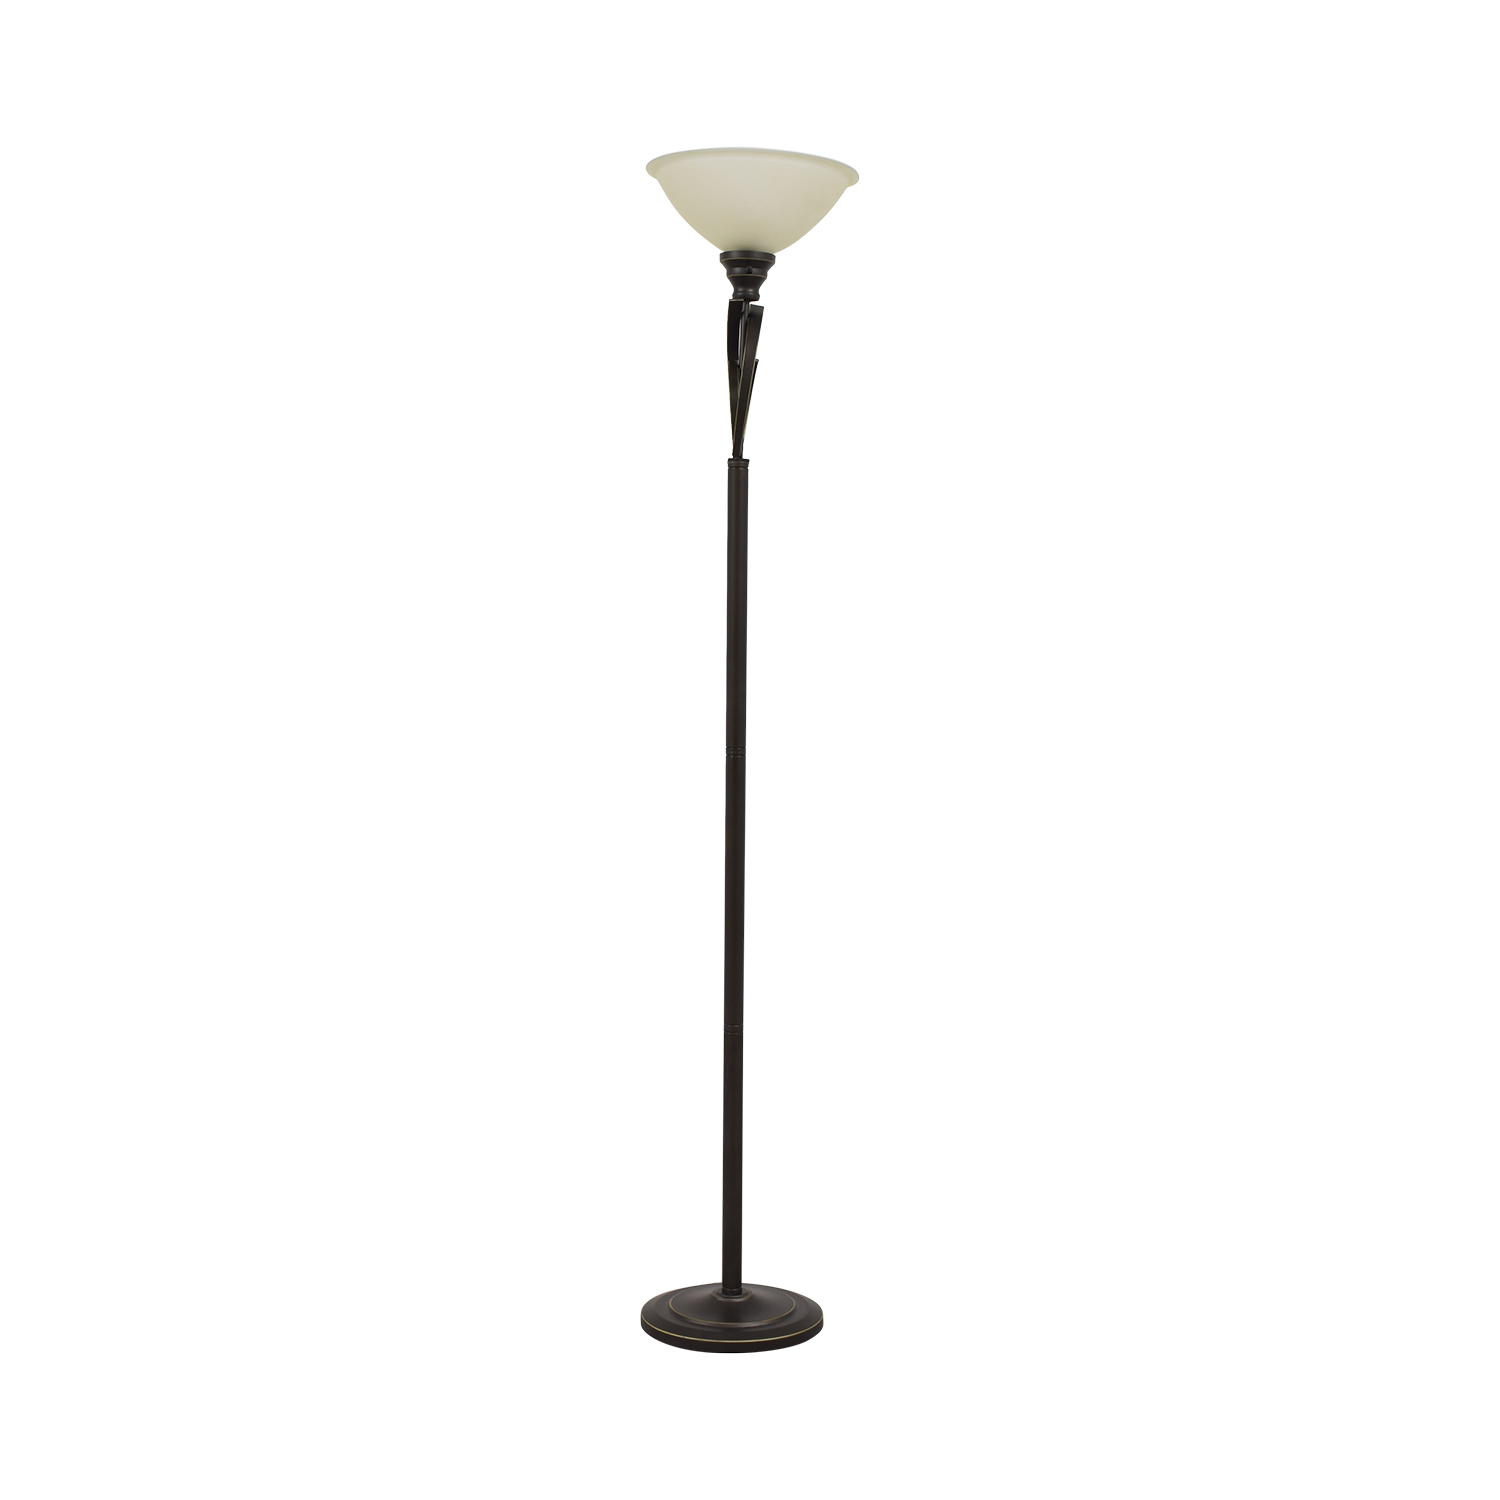 Torchiere Floor Lamp on sale